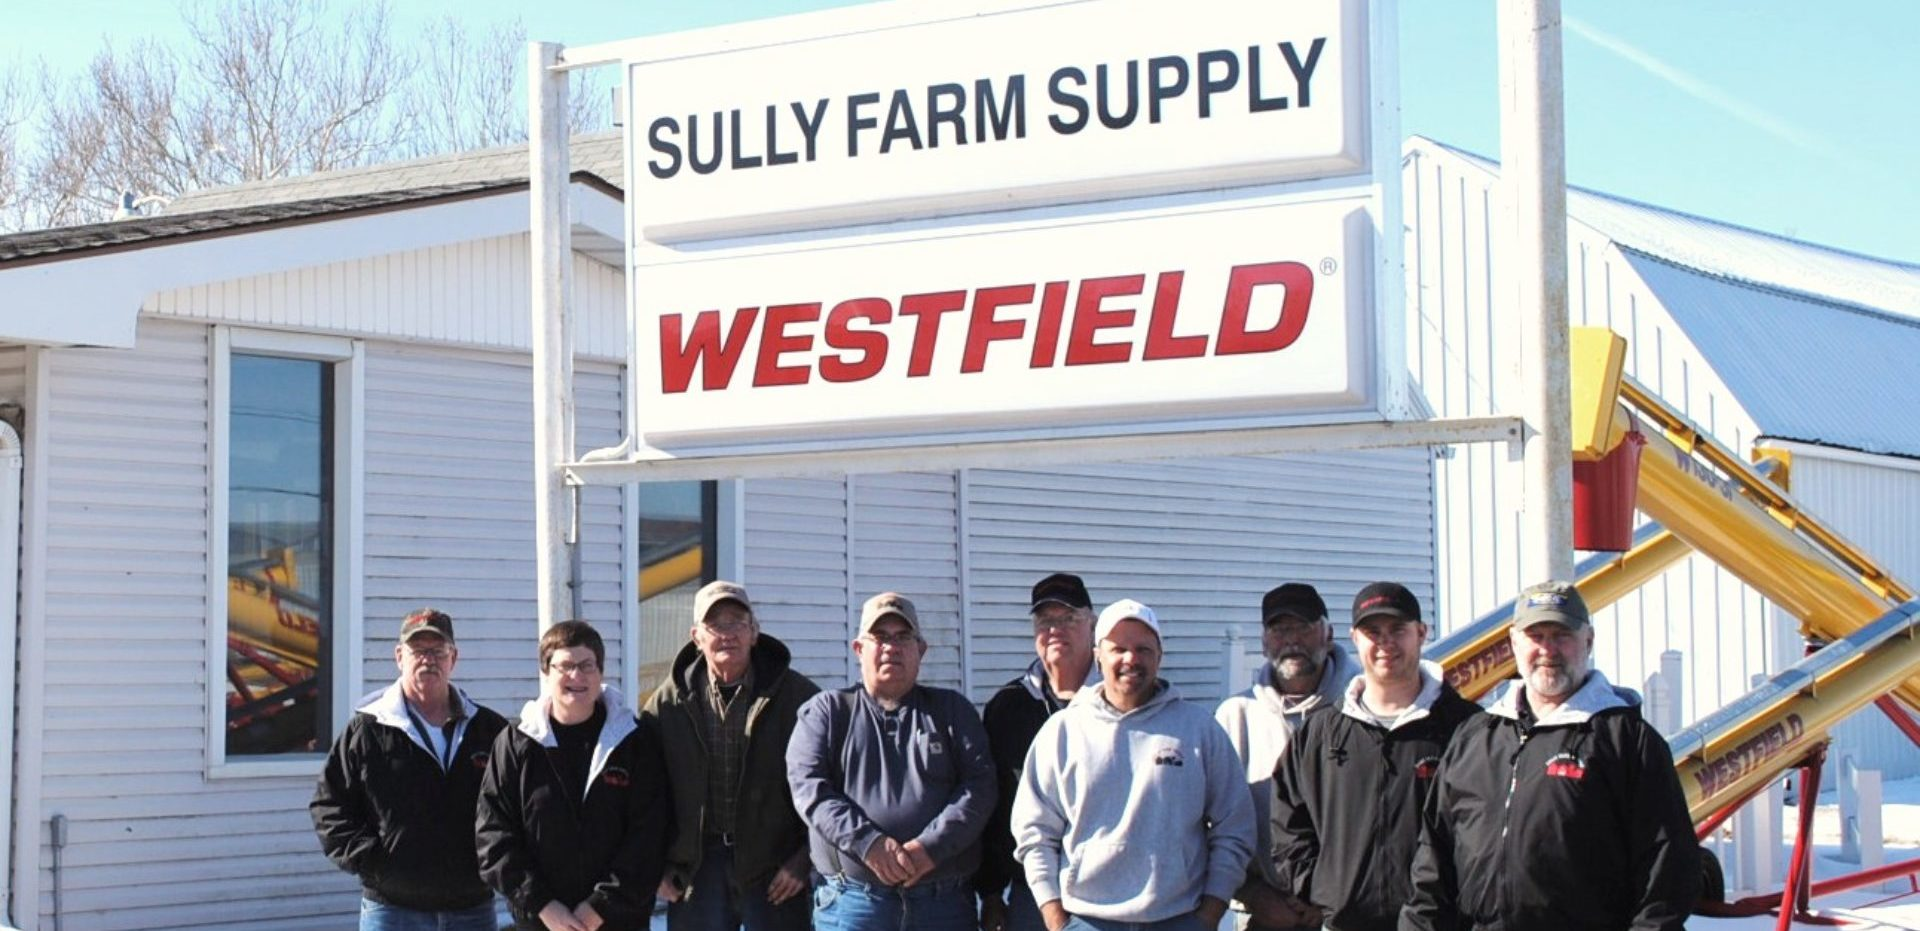 SULLY FARM SUPPLY